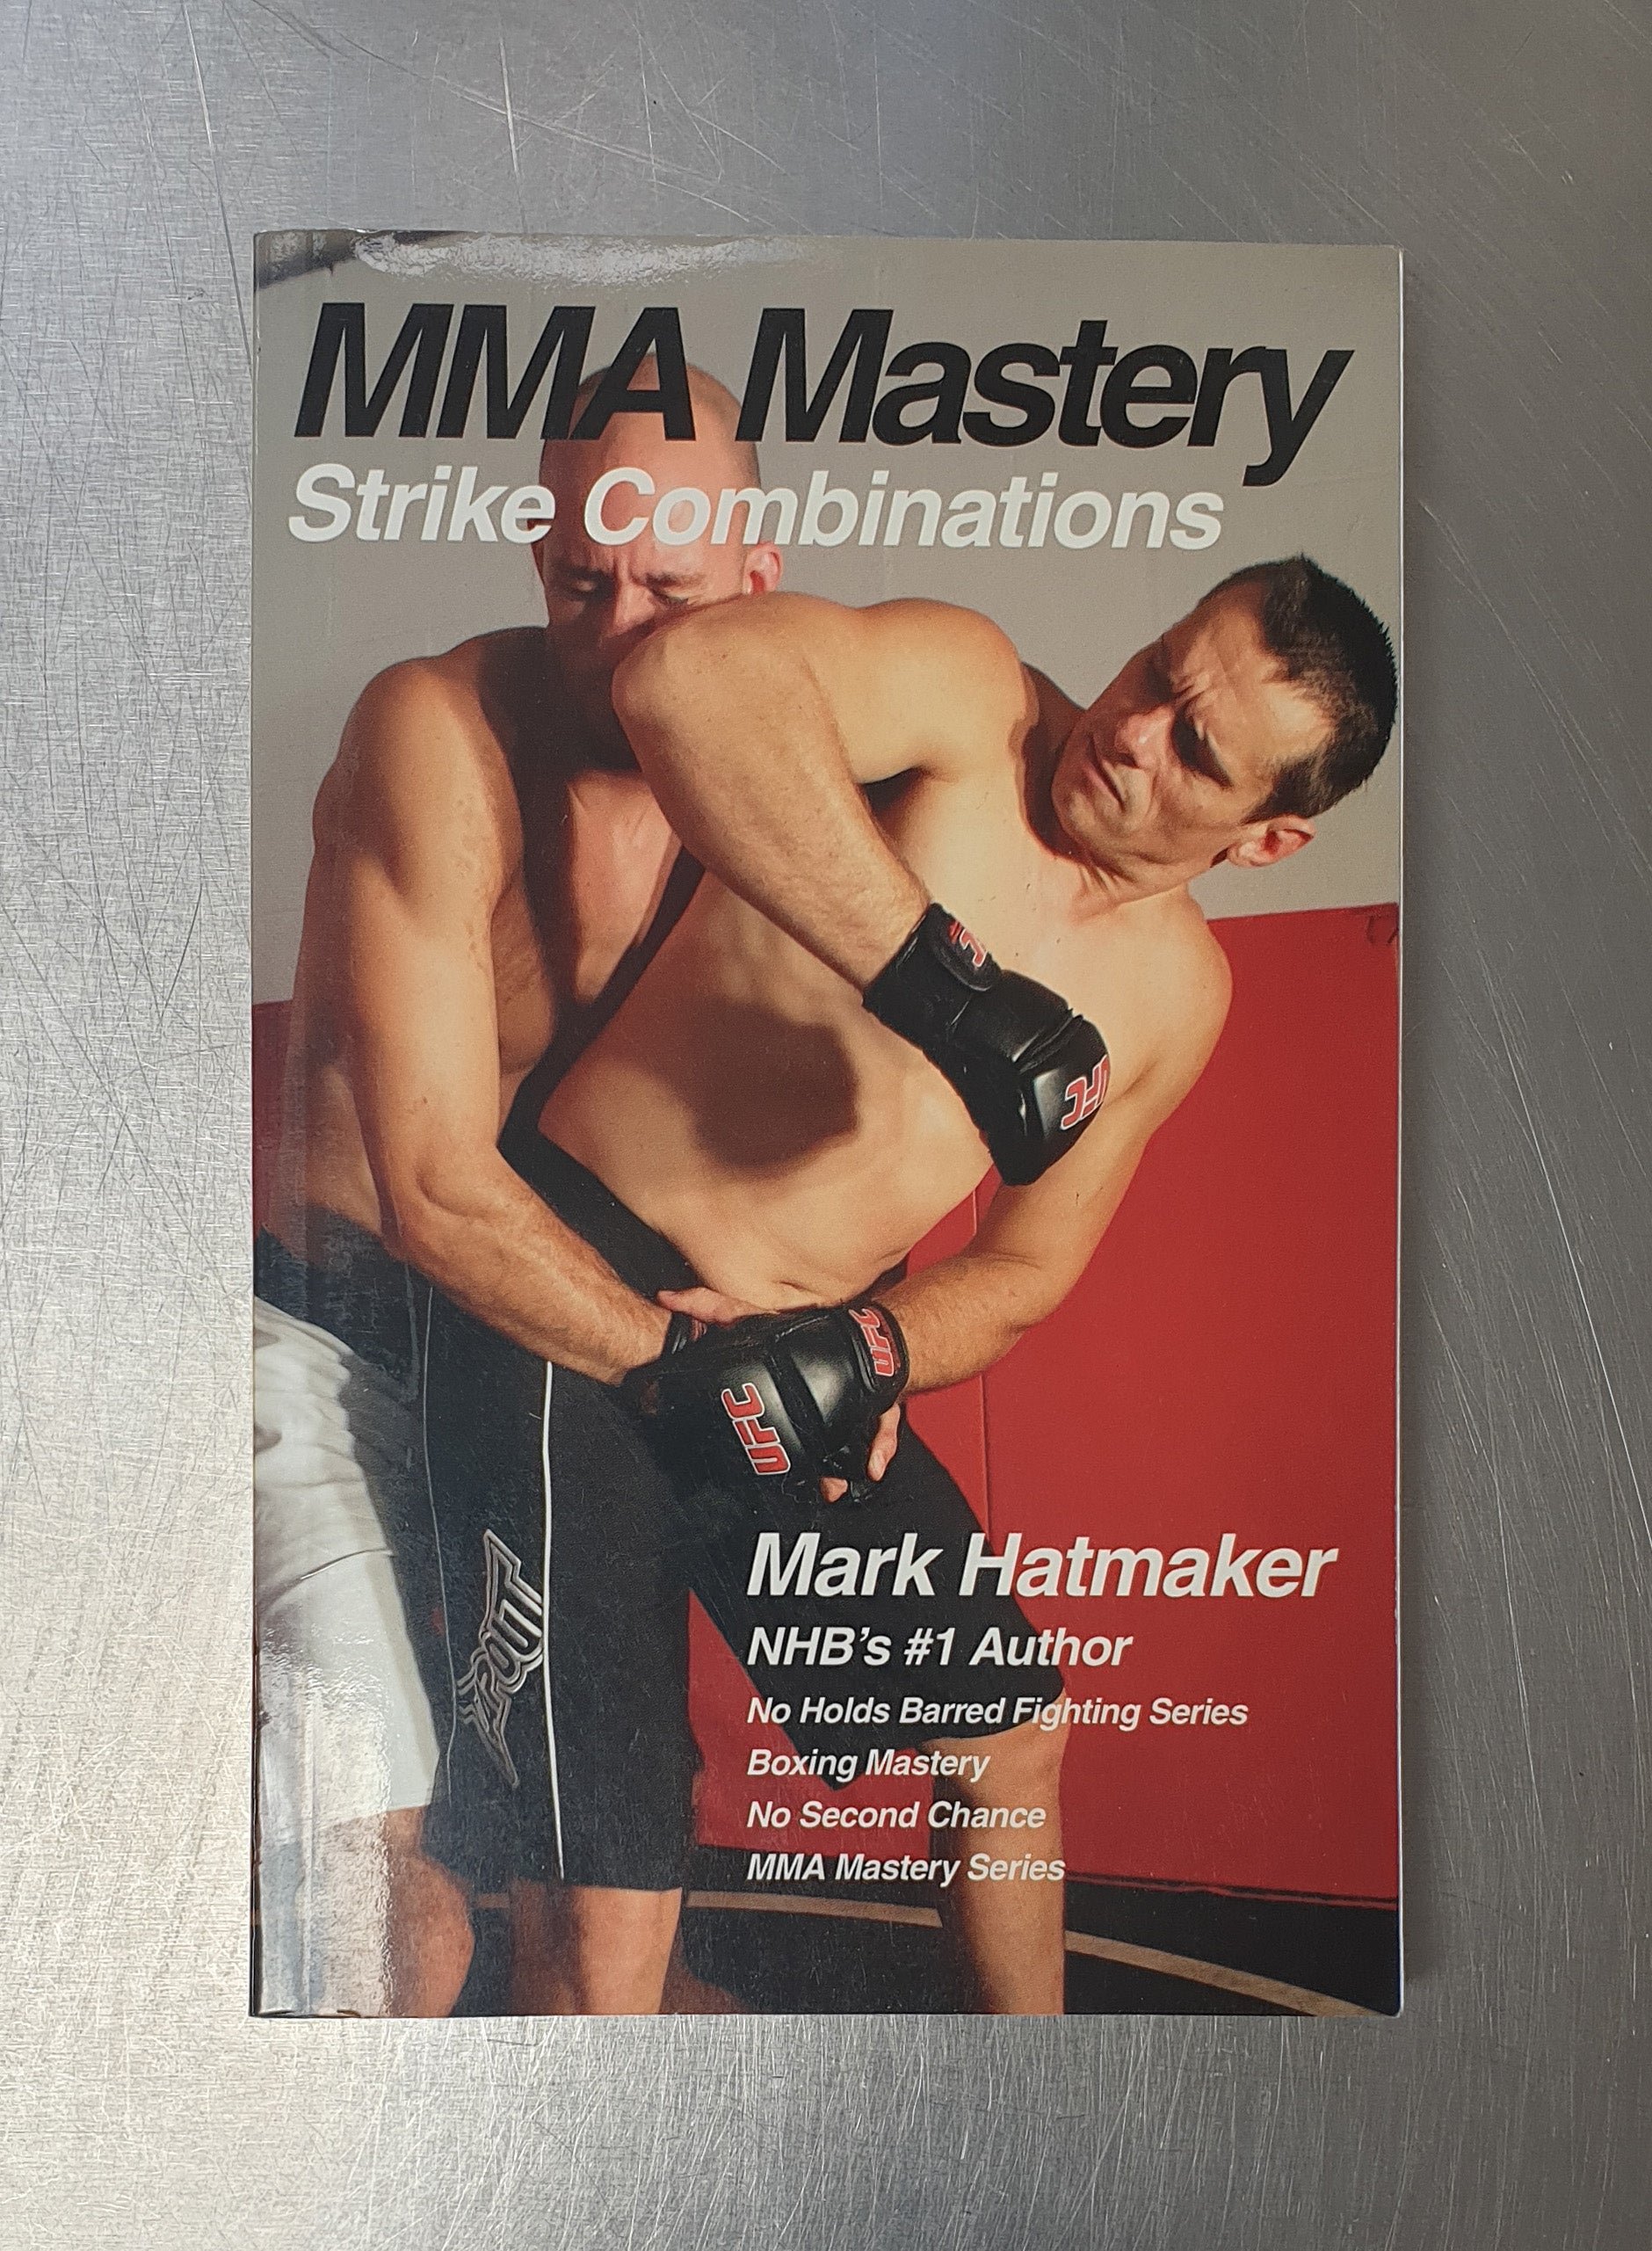 MMA MASTERY STRIKE COMBINATIONS by Mark Hatmaker - Hakutora